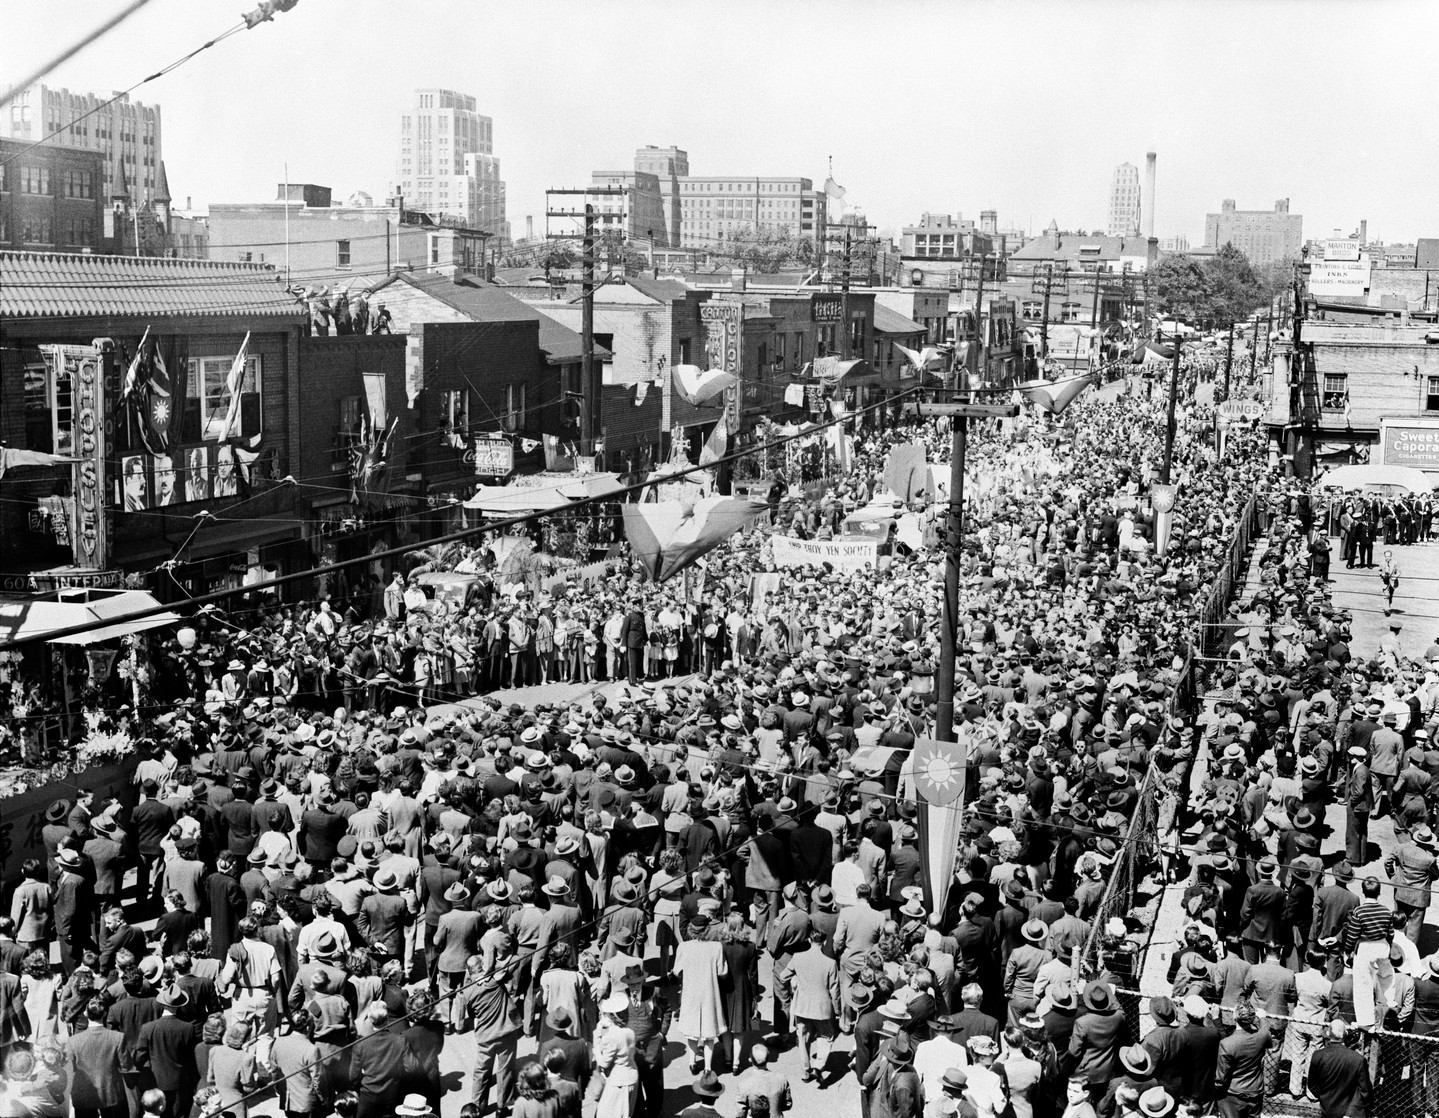 VJ-Day Parade in Chinatown, 1945